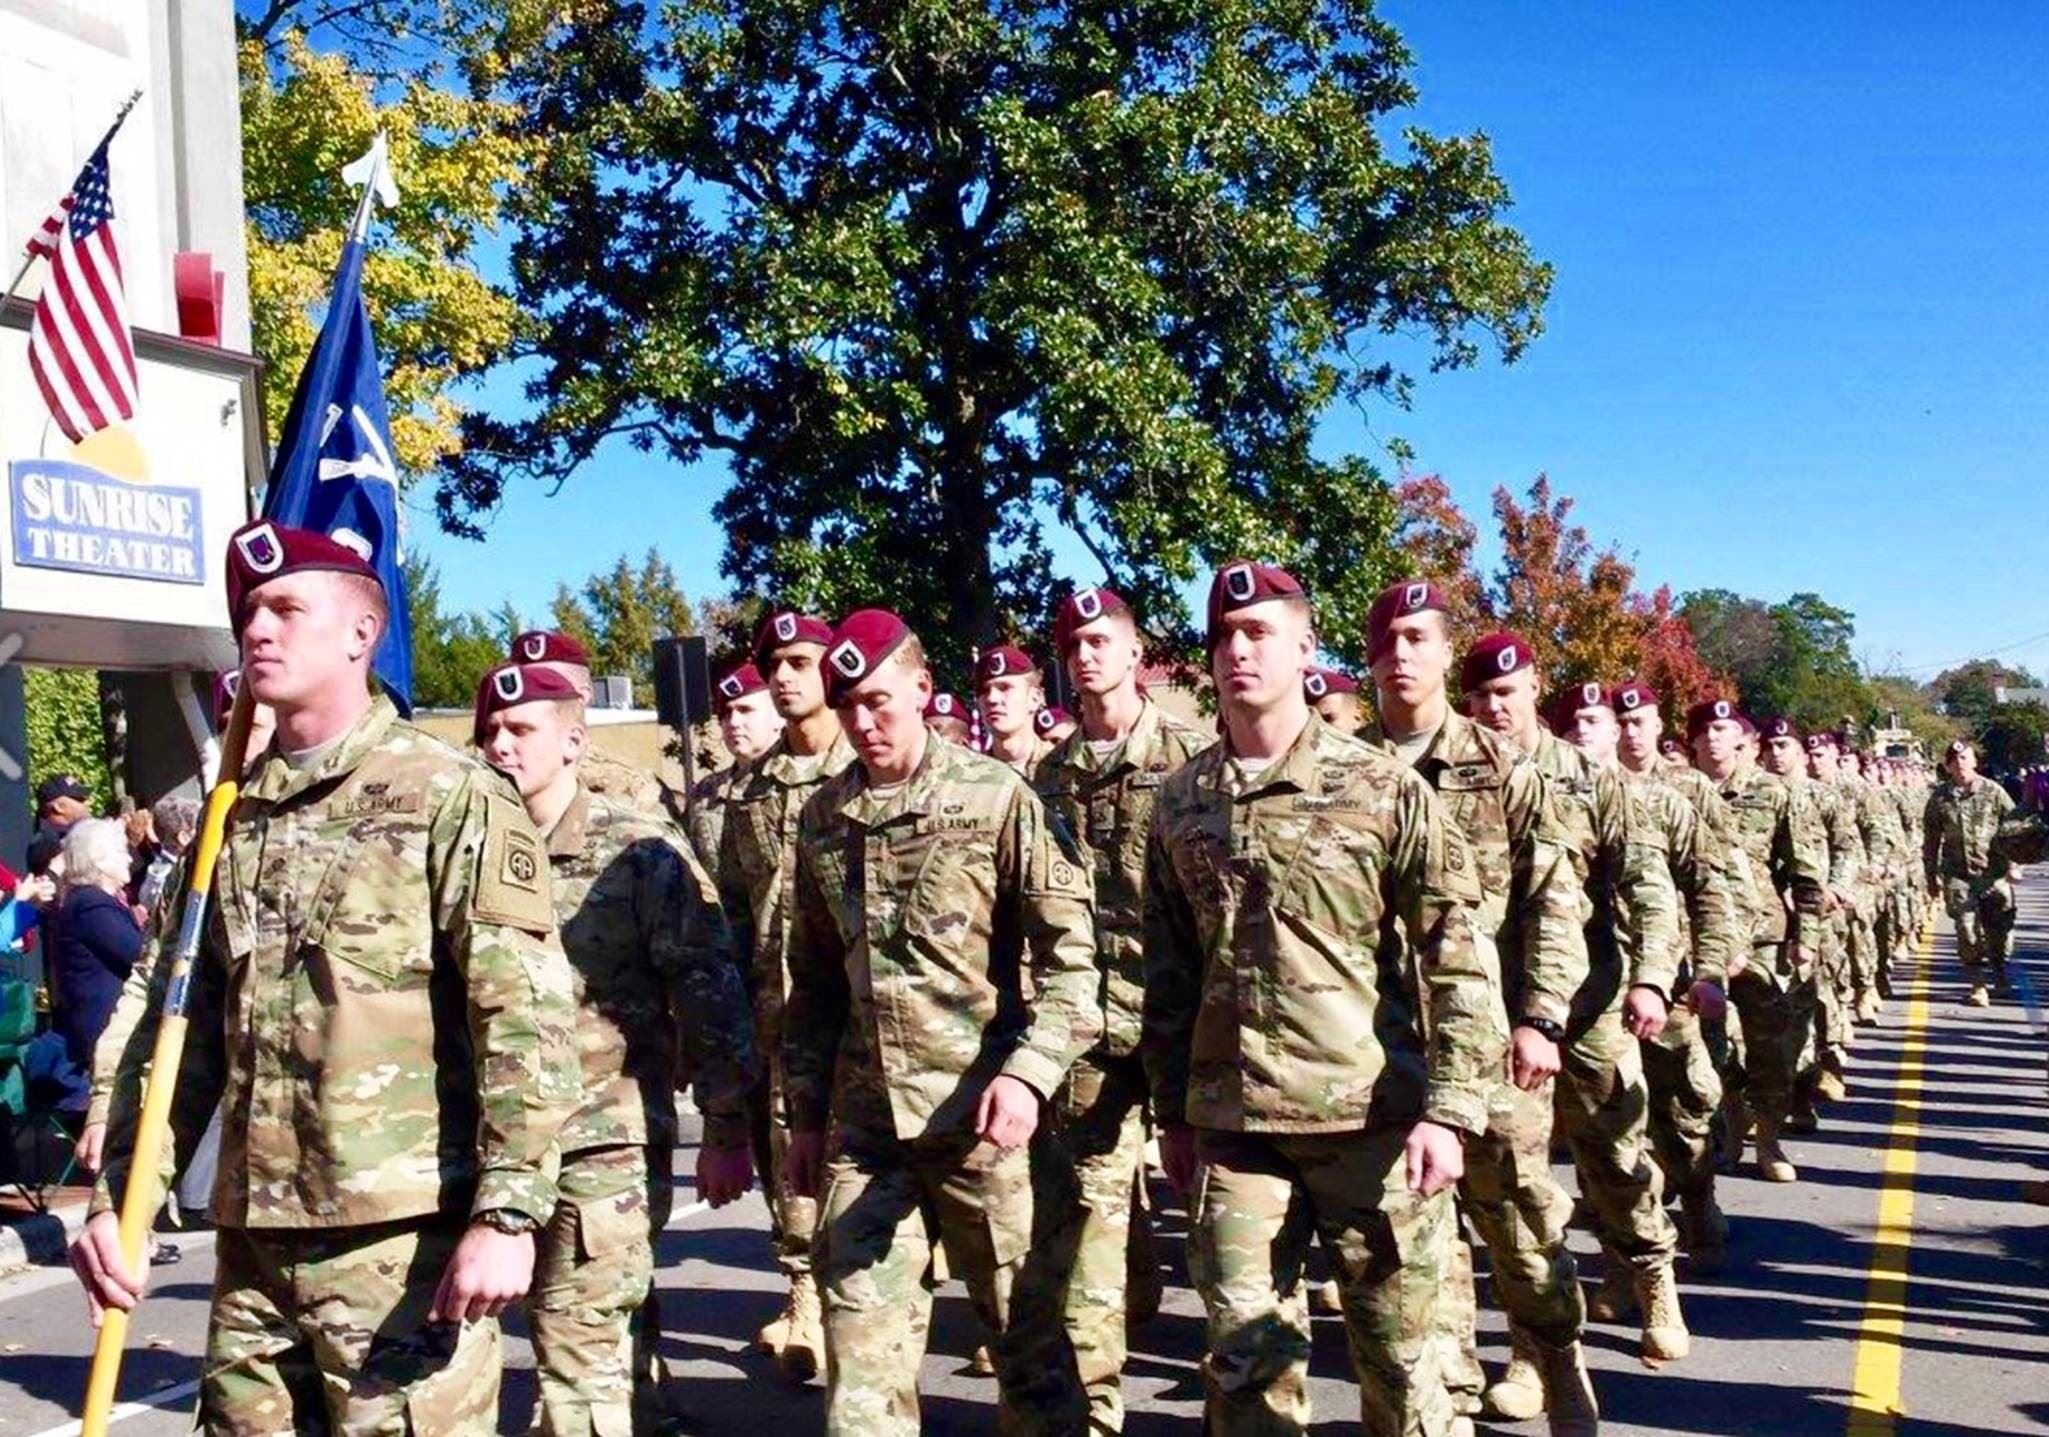 2016 Veterans Parade - 82nd Airborne 1-508 C-Co and 1-307 D-Co